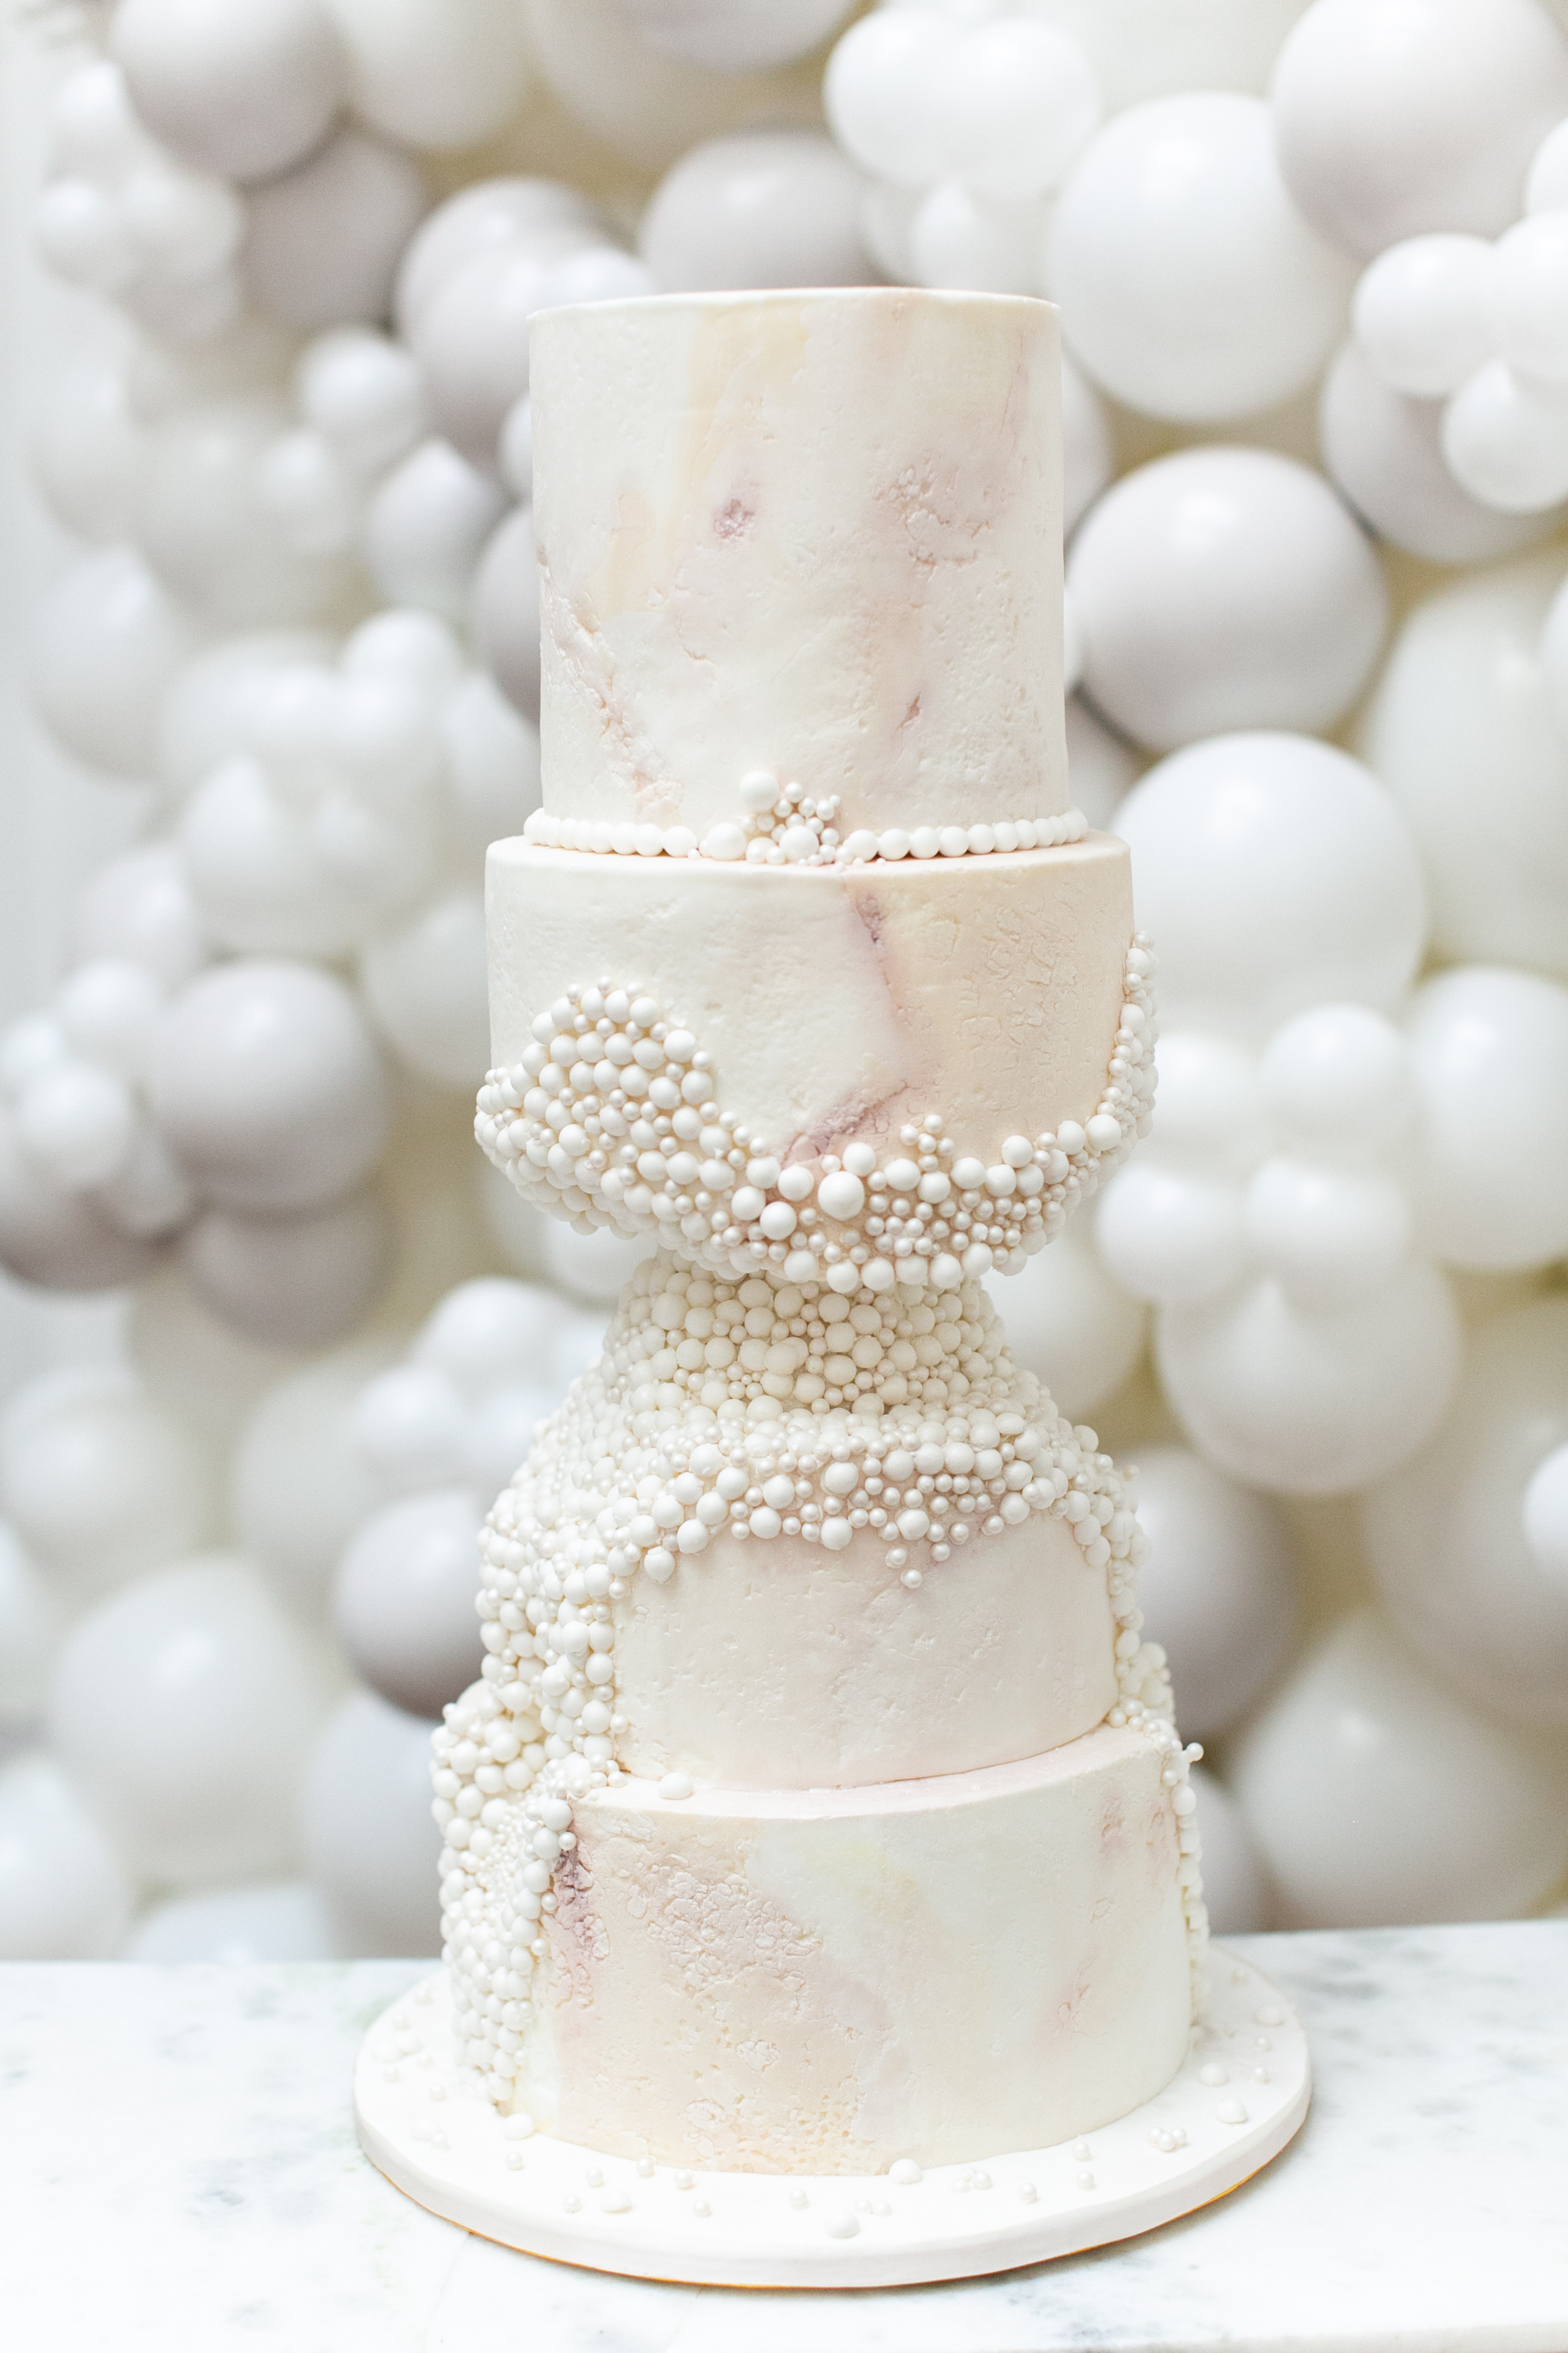 carved-pearlode-luxury-wedding-cake-from-elizabeths-cake-emporium-1